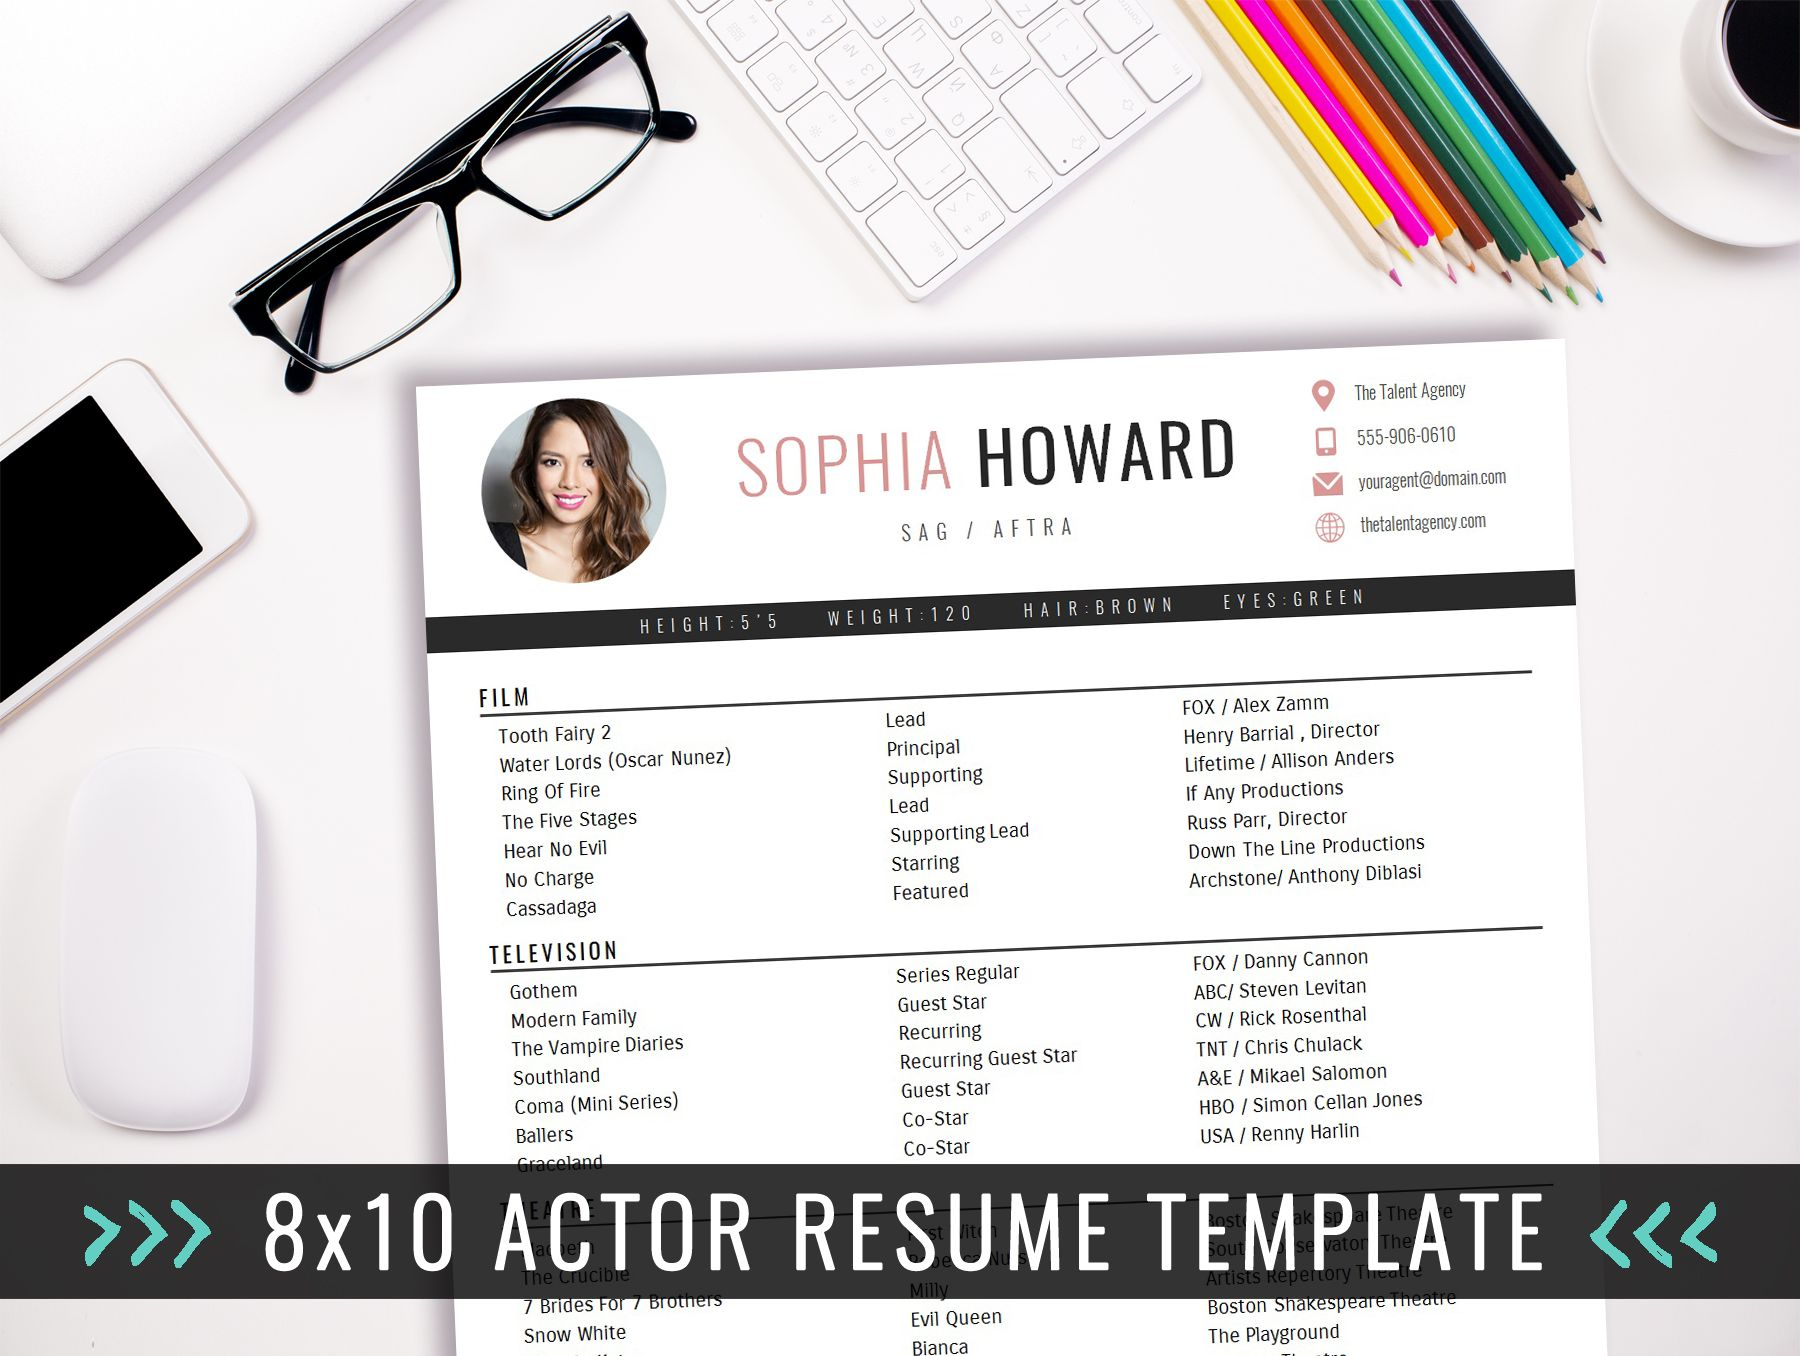 X Actor Resume Template With Photo  X Actor Resume Template